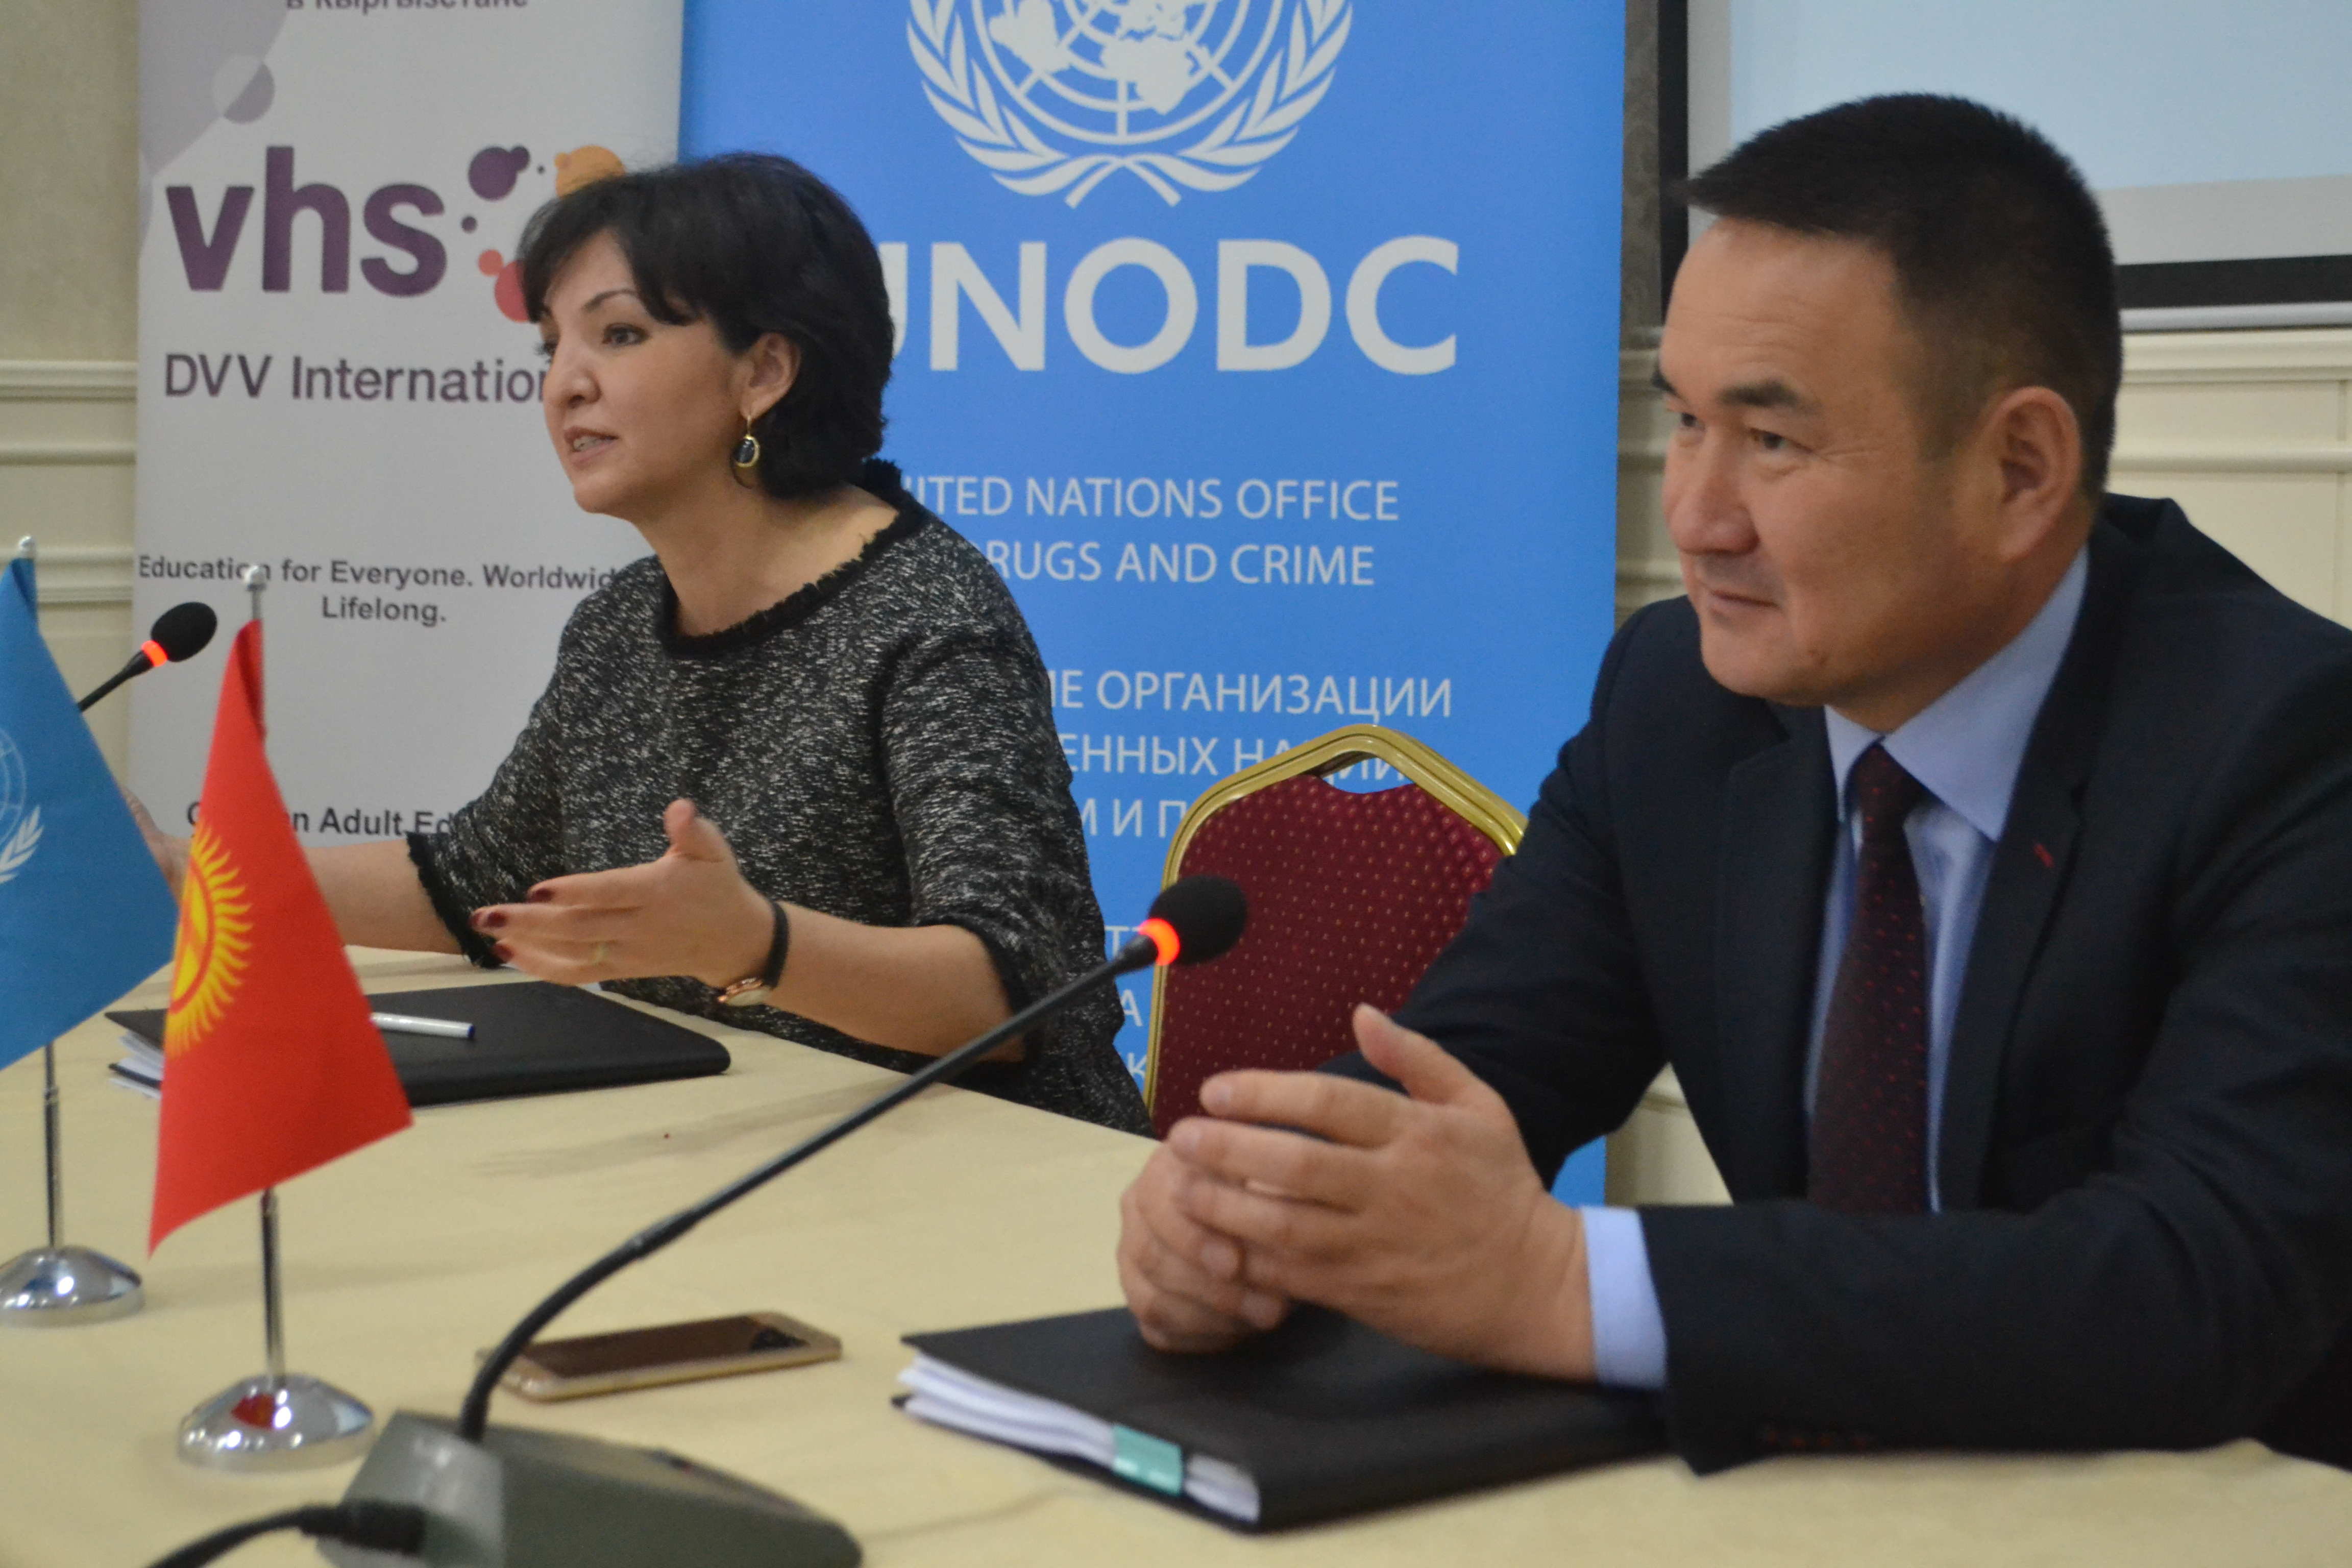 Zambia and Kyrgyzstan join forces with UNODC to promote public safety through supporting prison-based rehabilitation programmes